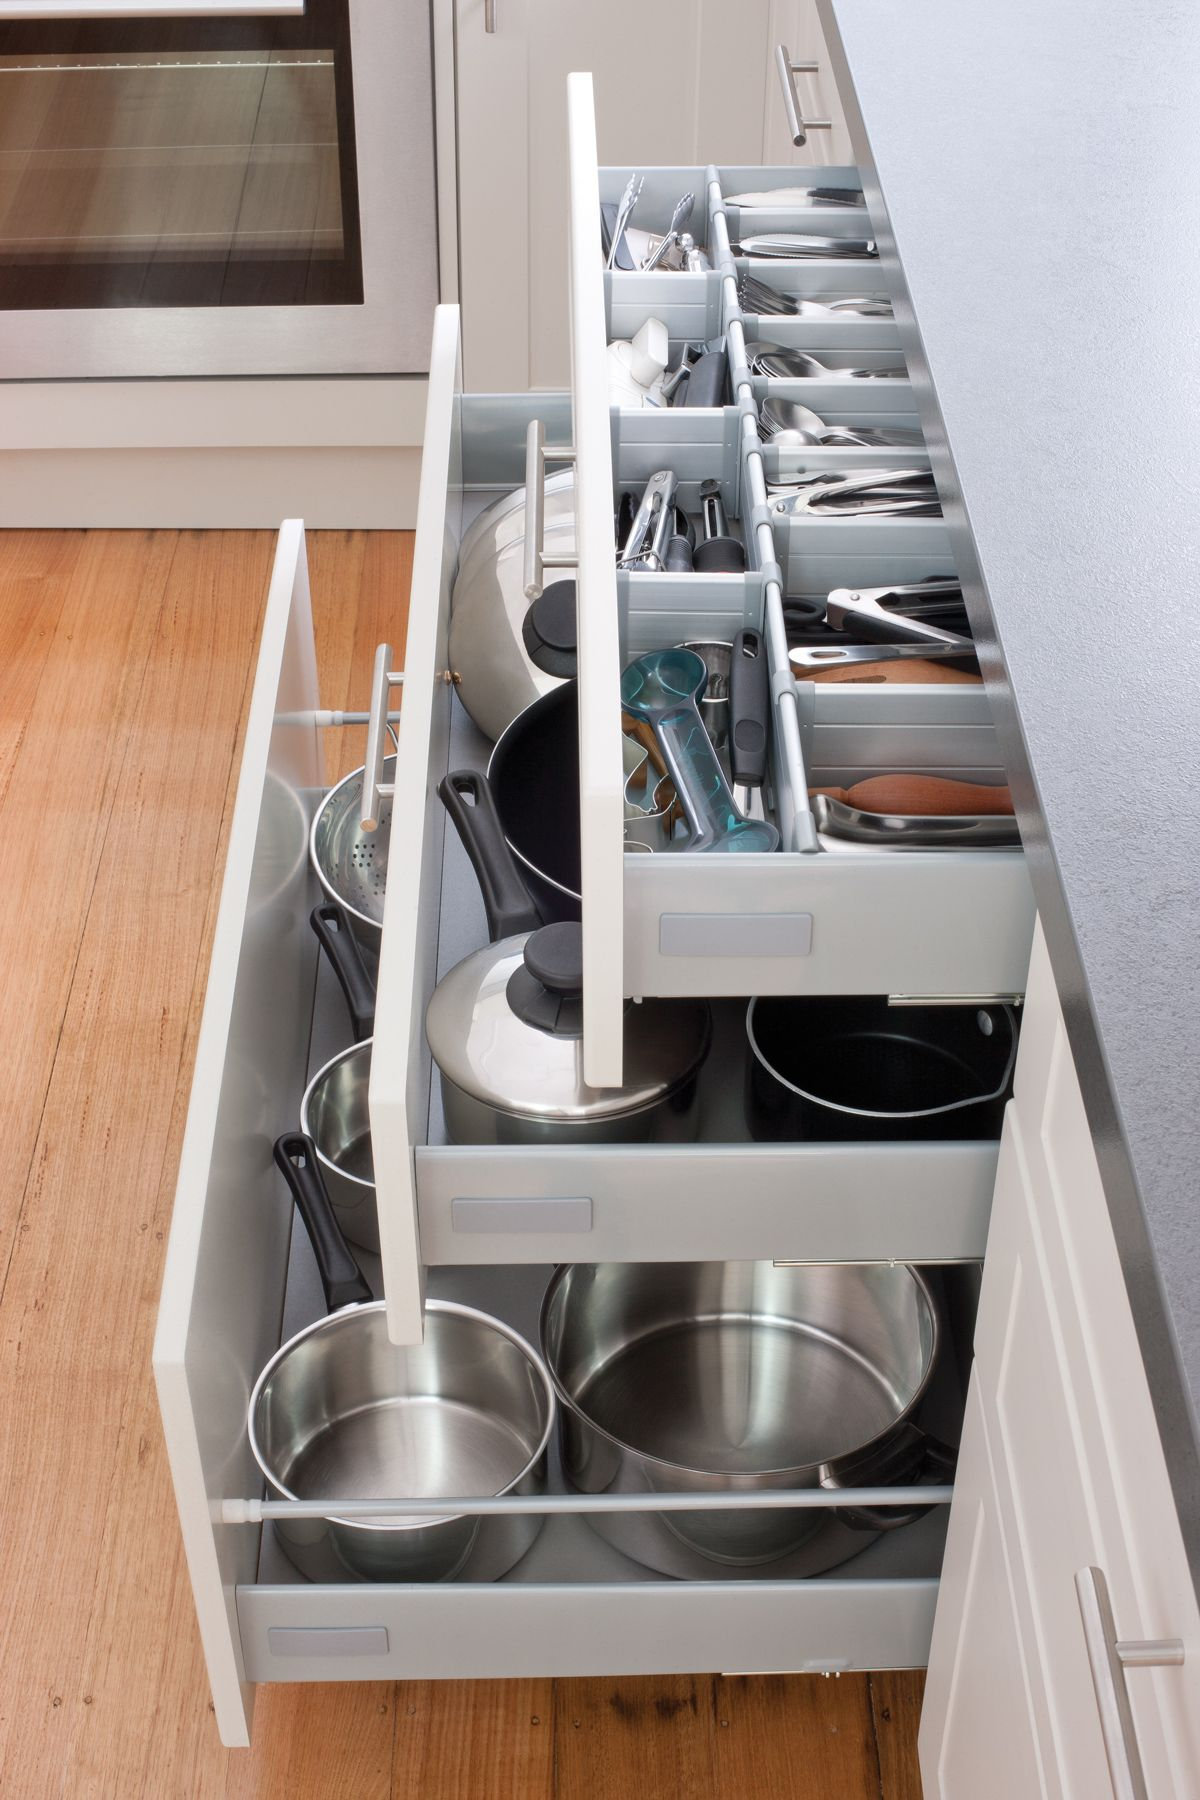 Kitchen Cabinet Drawers Keep Your Kitchen In Order With Our Pot Drawers And Cutlery